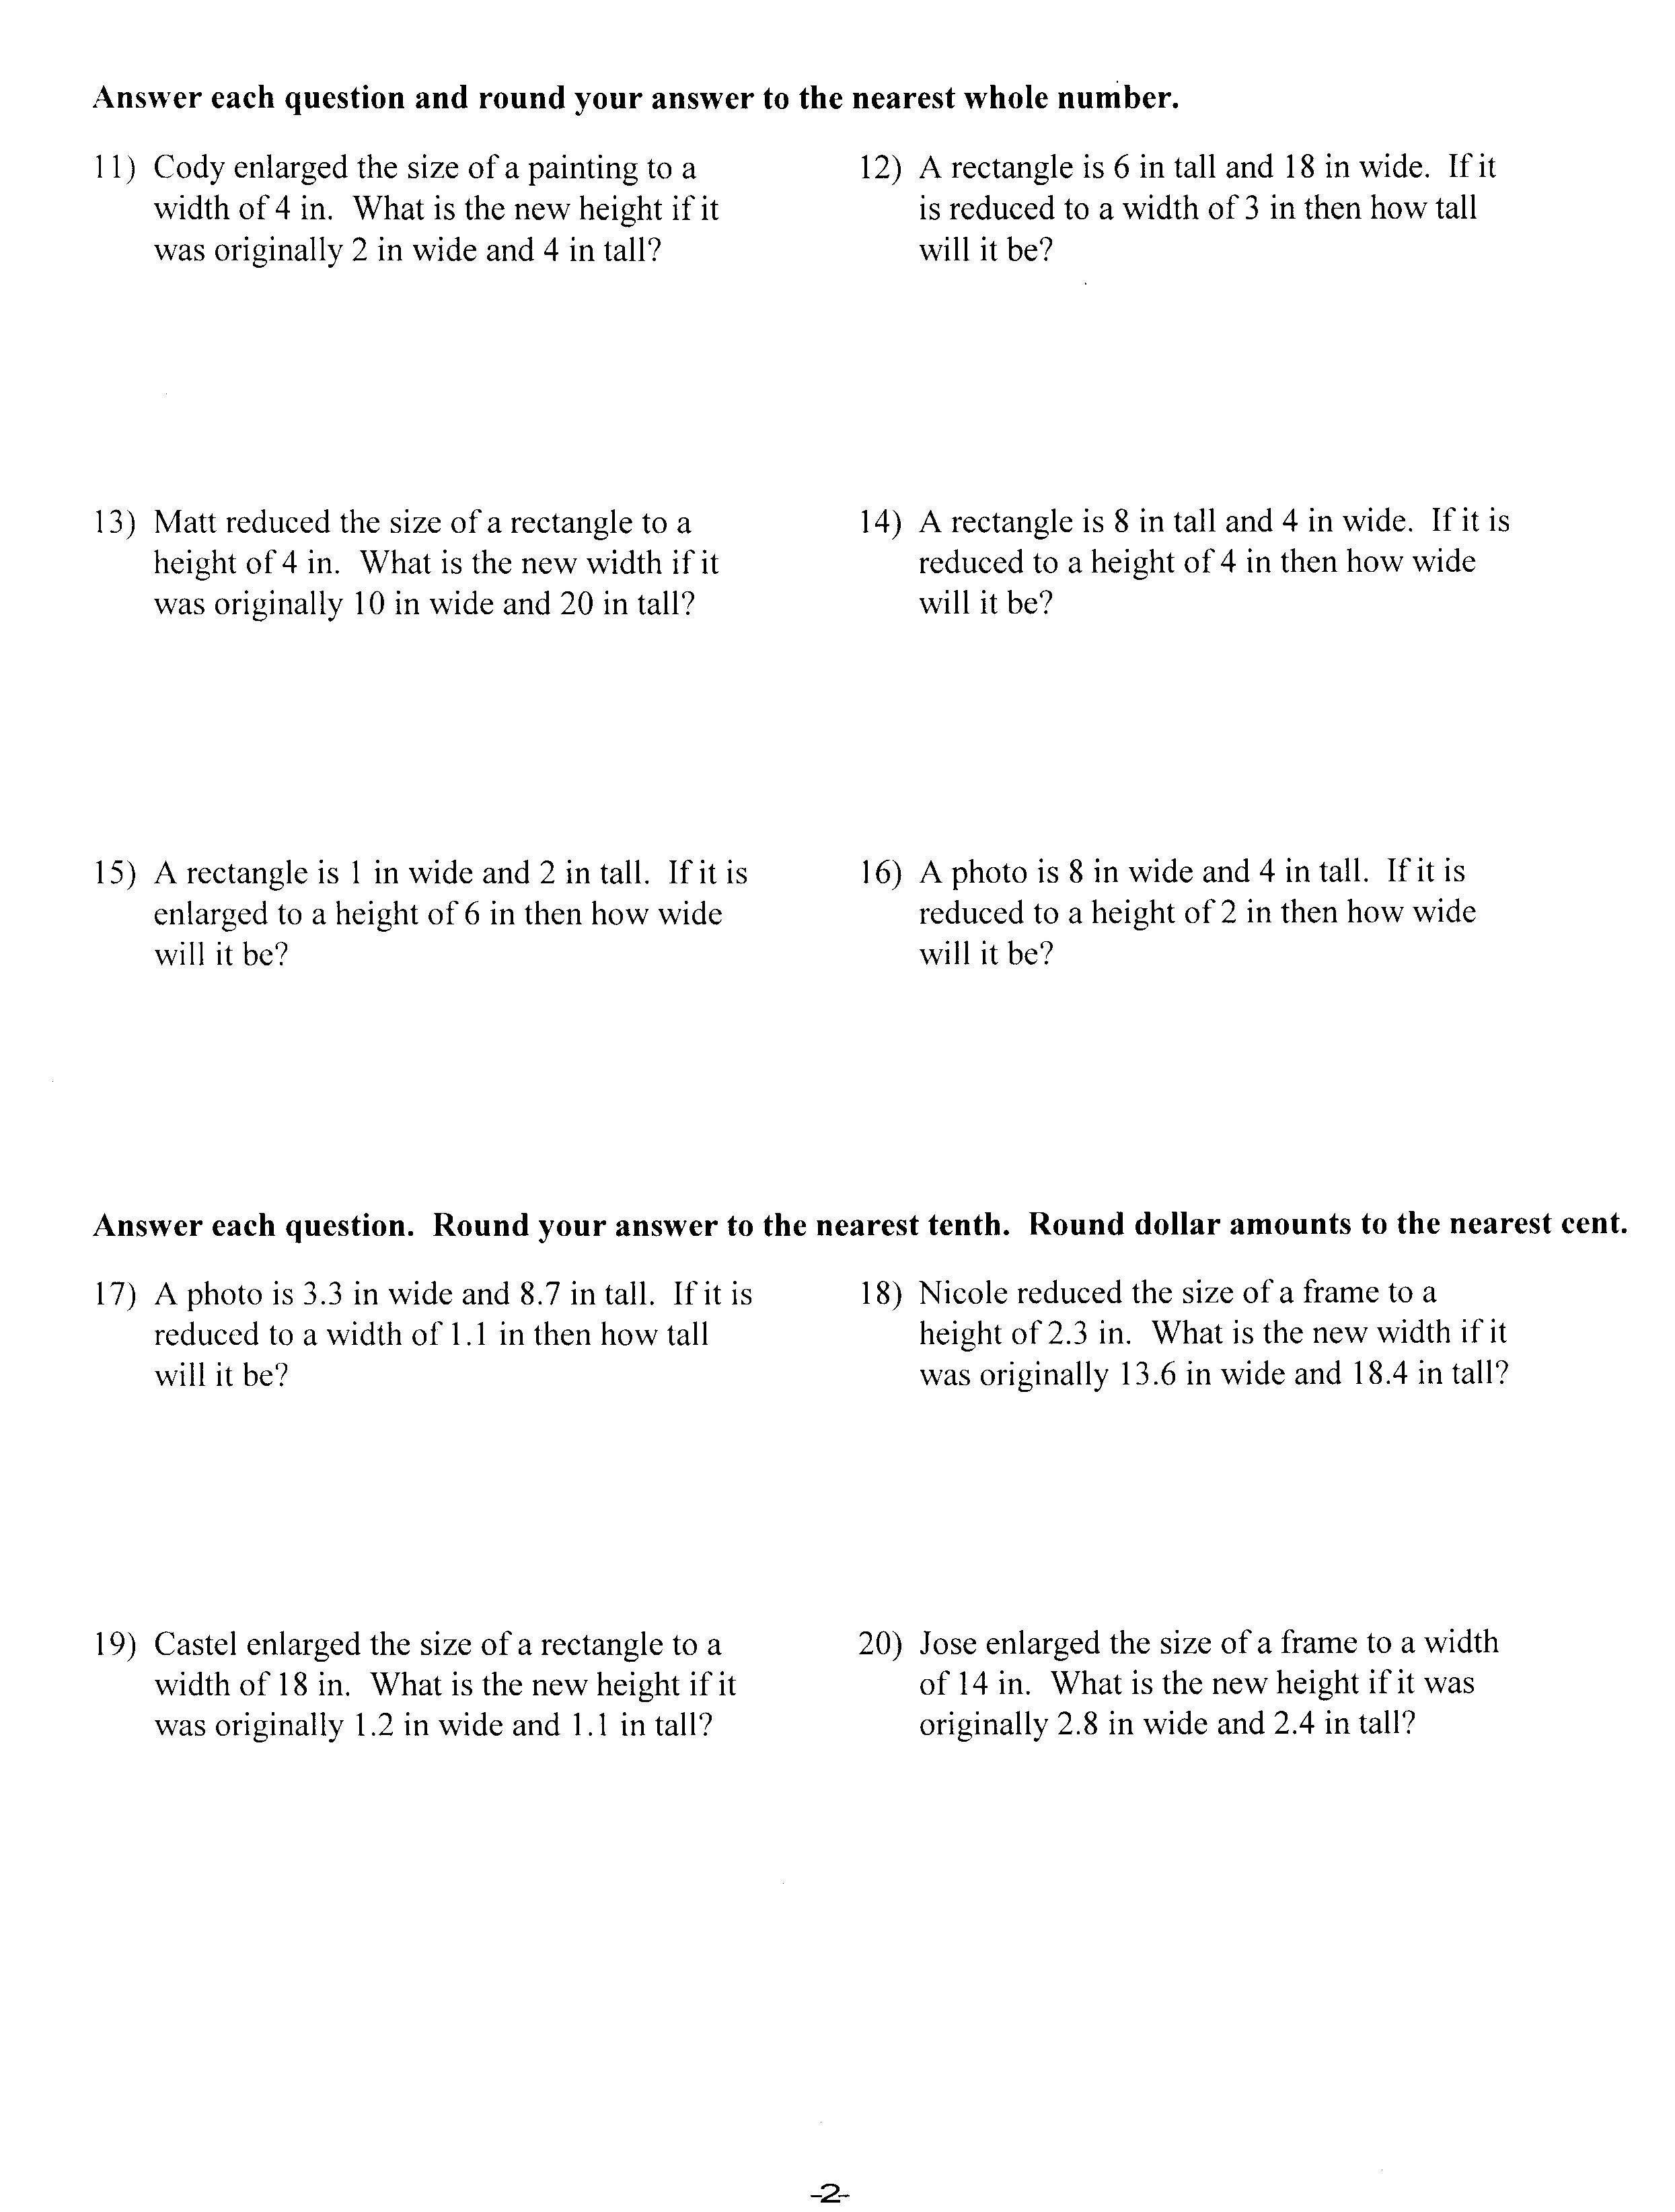 Printables Pearson Chemistry Worksheet Answers pearson chemistry worksheet answers abitlikethis answer key as well possessive nouns test worksheet